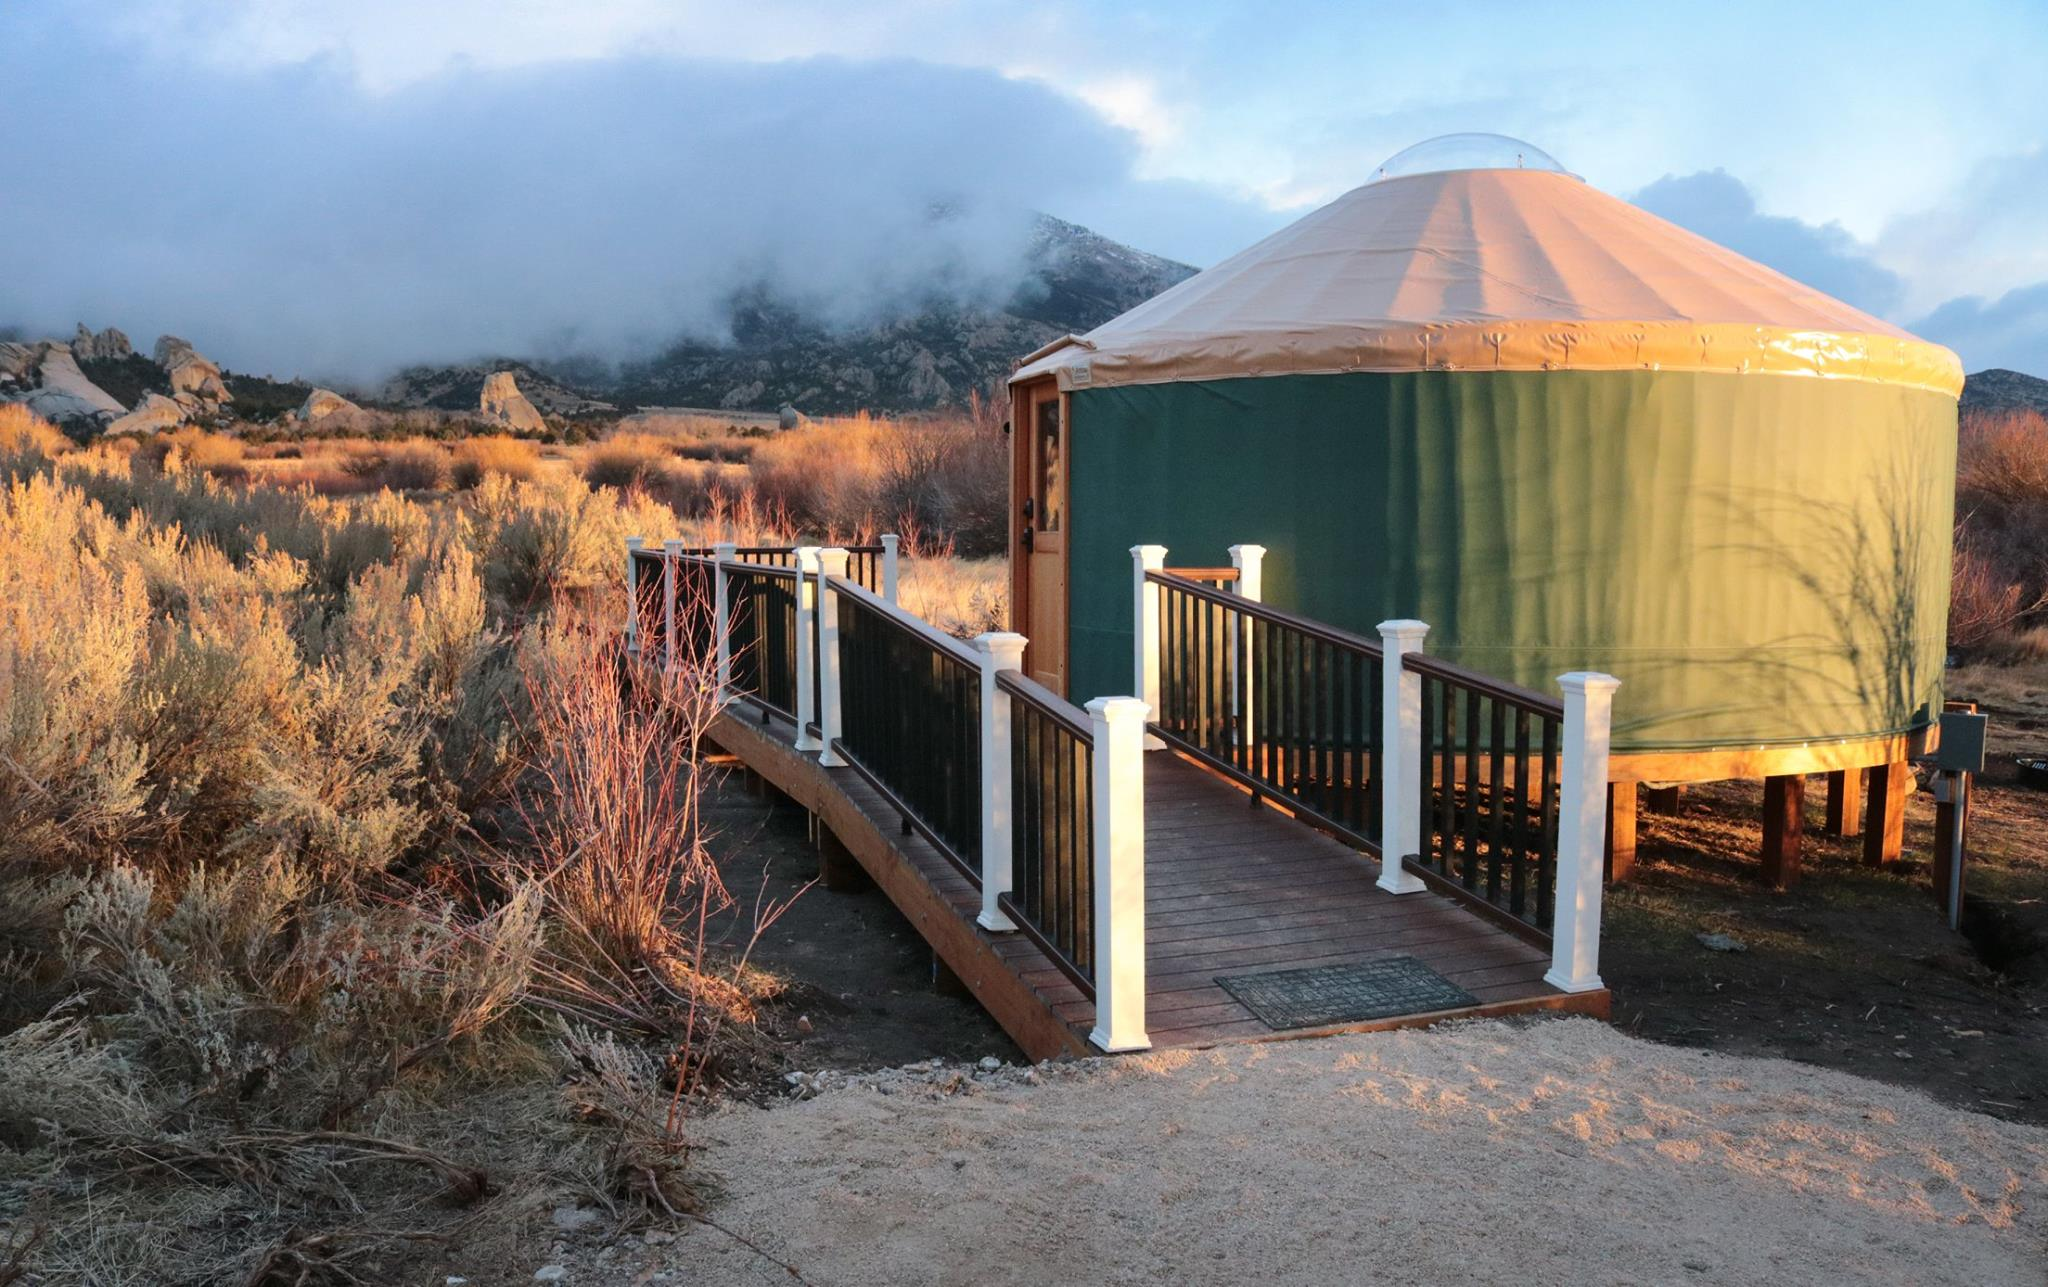 Castle Rock Lodge, Bunkhouse and Willow Glamping Yurt - City